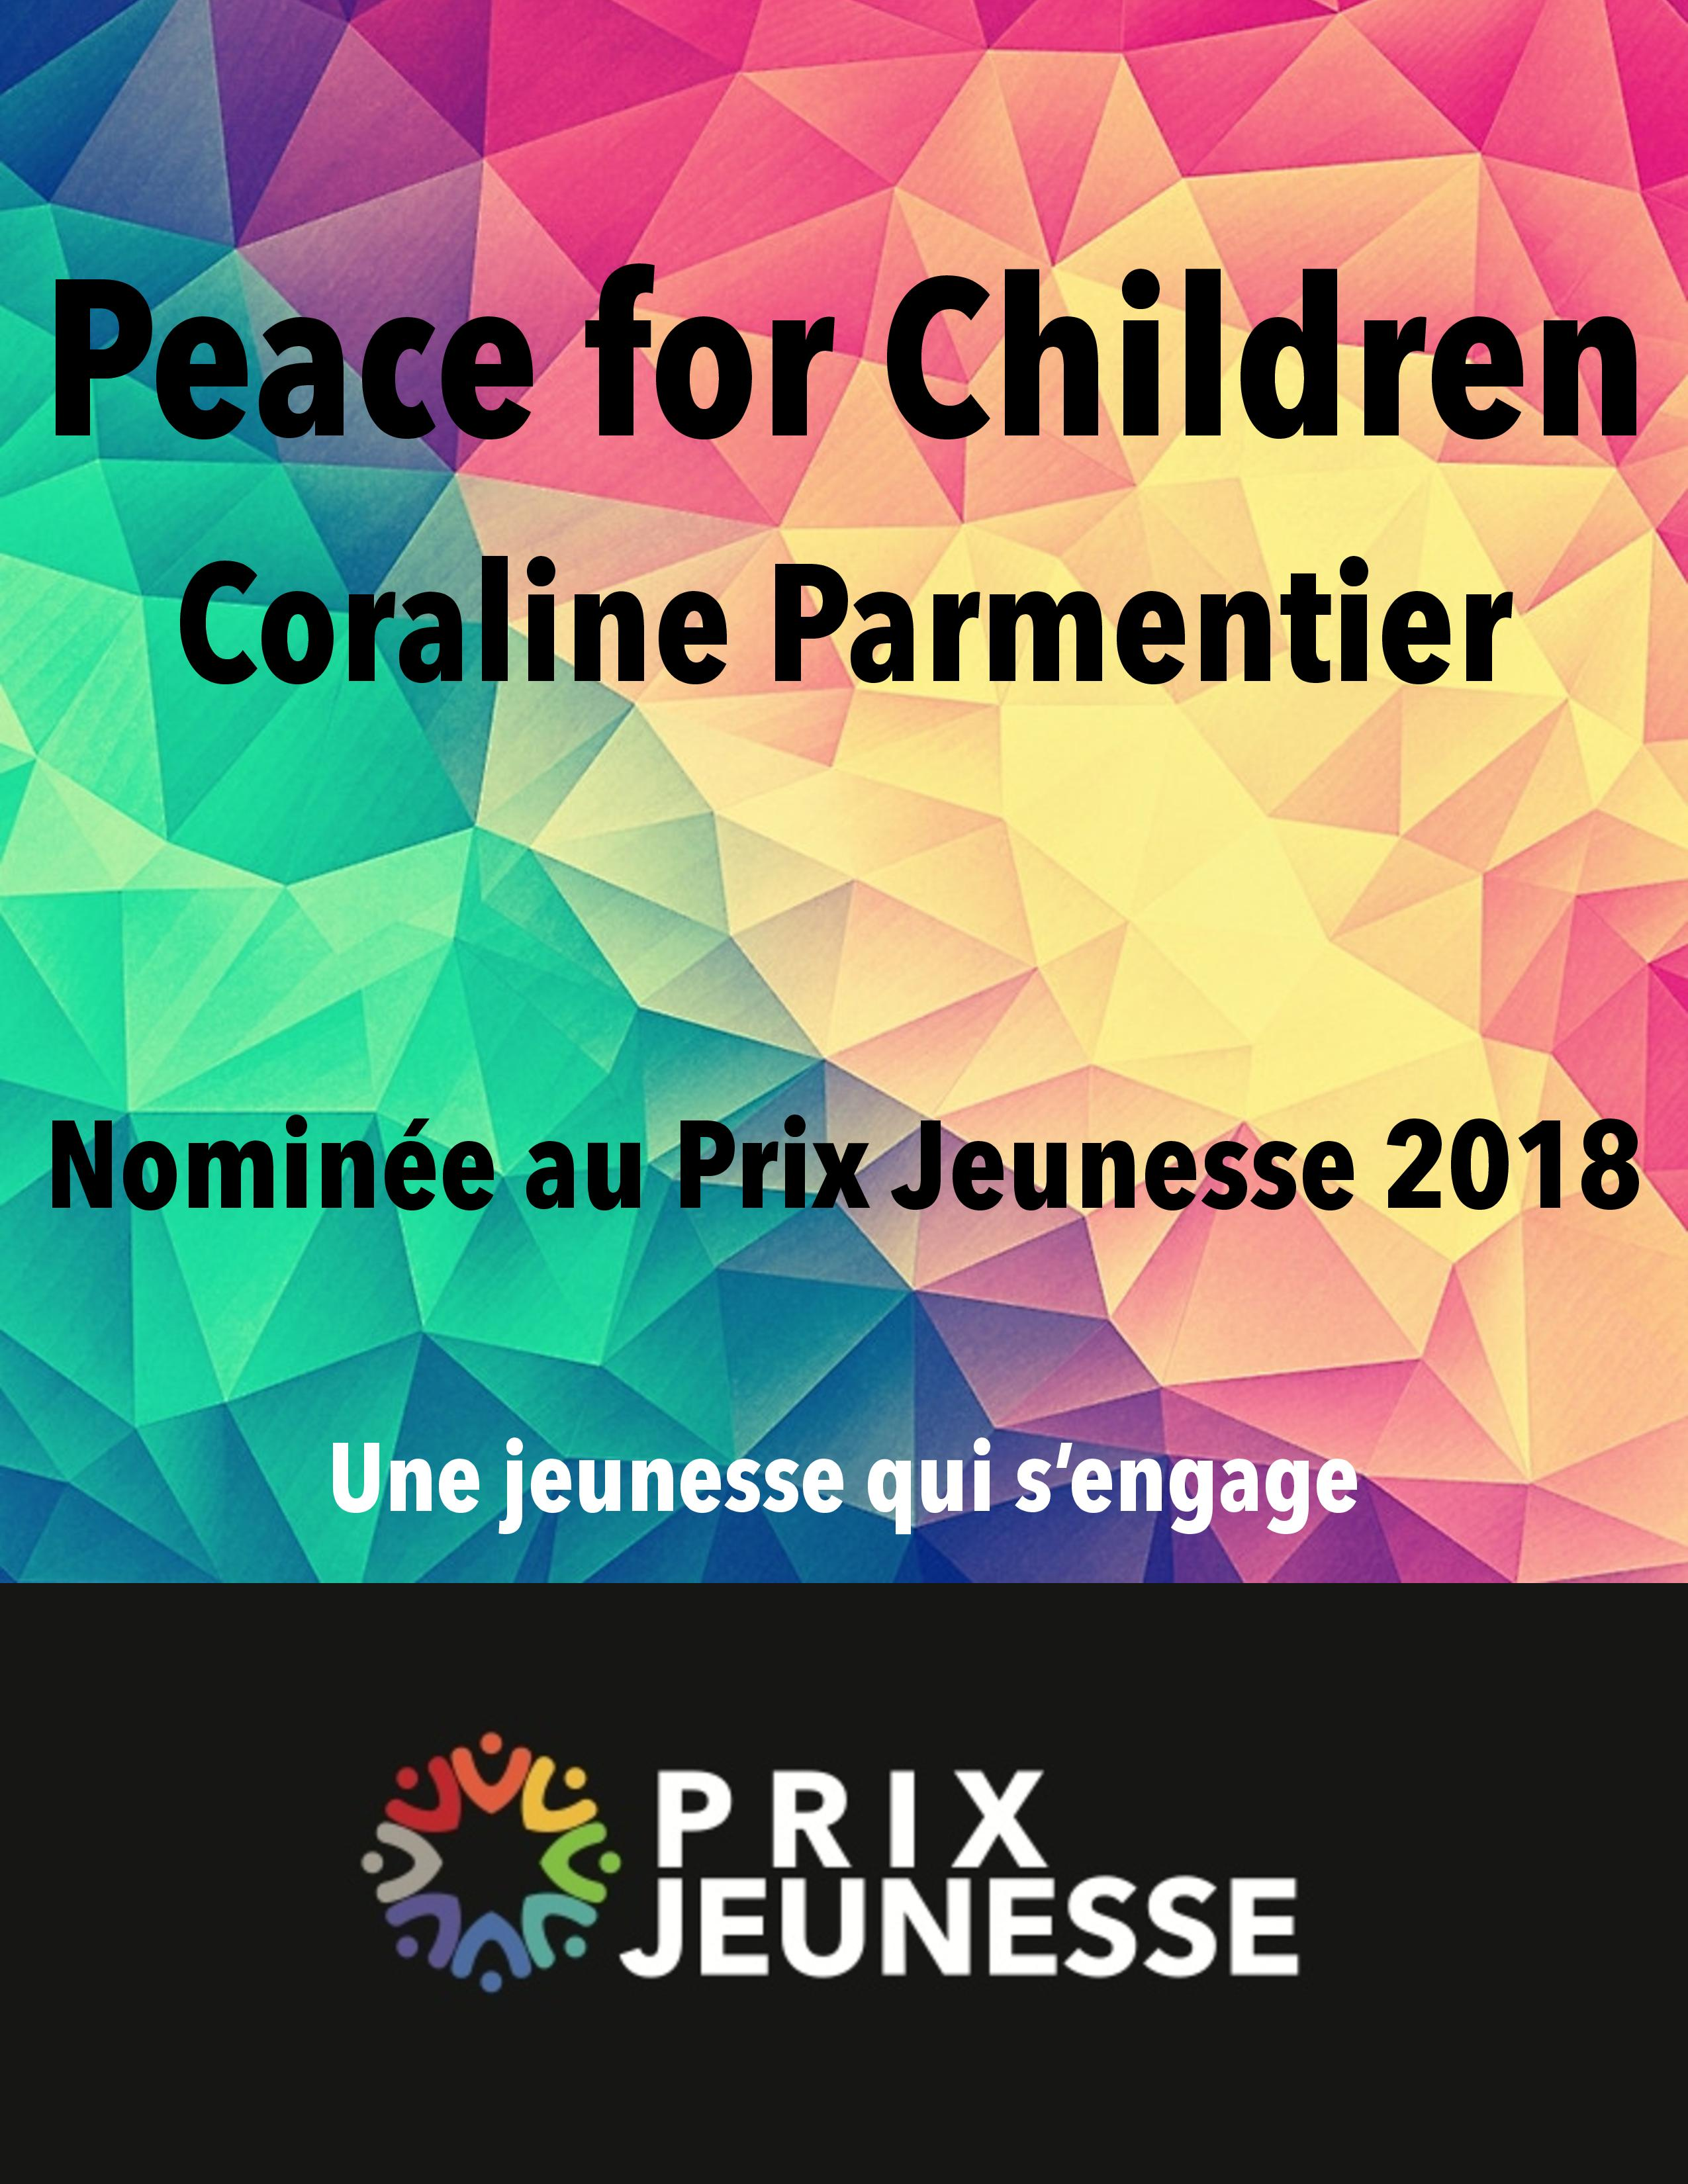 Candidat  Peace for Children - Coraline Parmentier